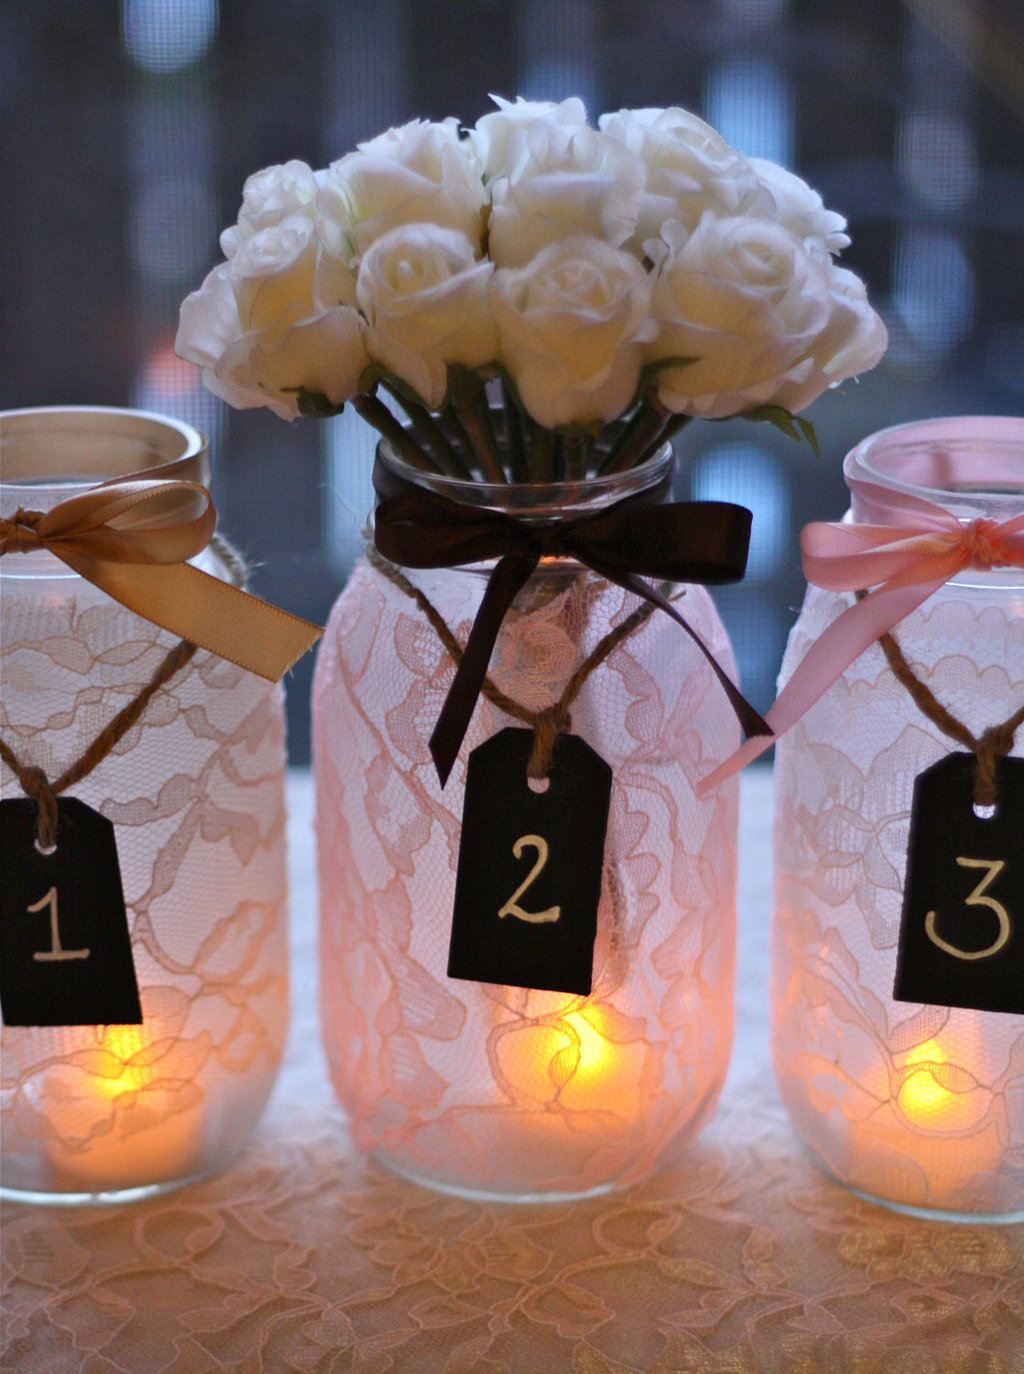 Things-brides-love-mason-jar-wedding-reception-decor-centerpieces-lace-with-chalkboard-tags.full